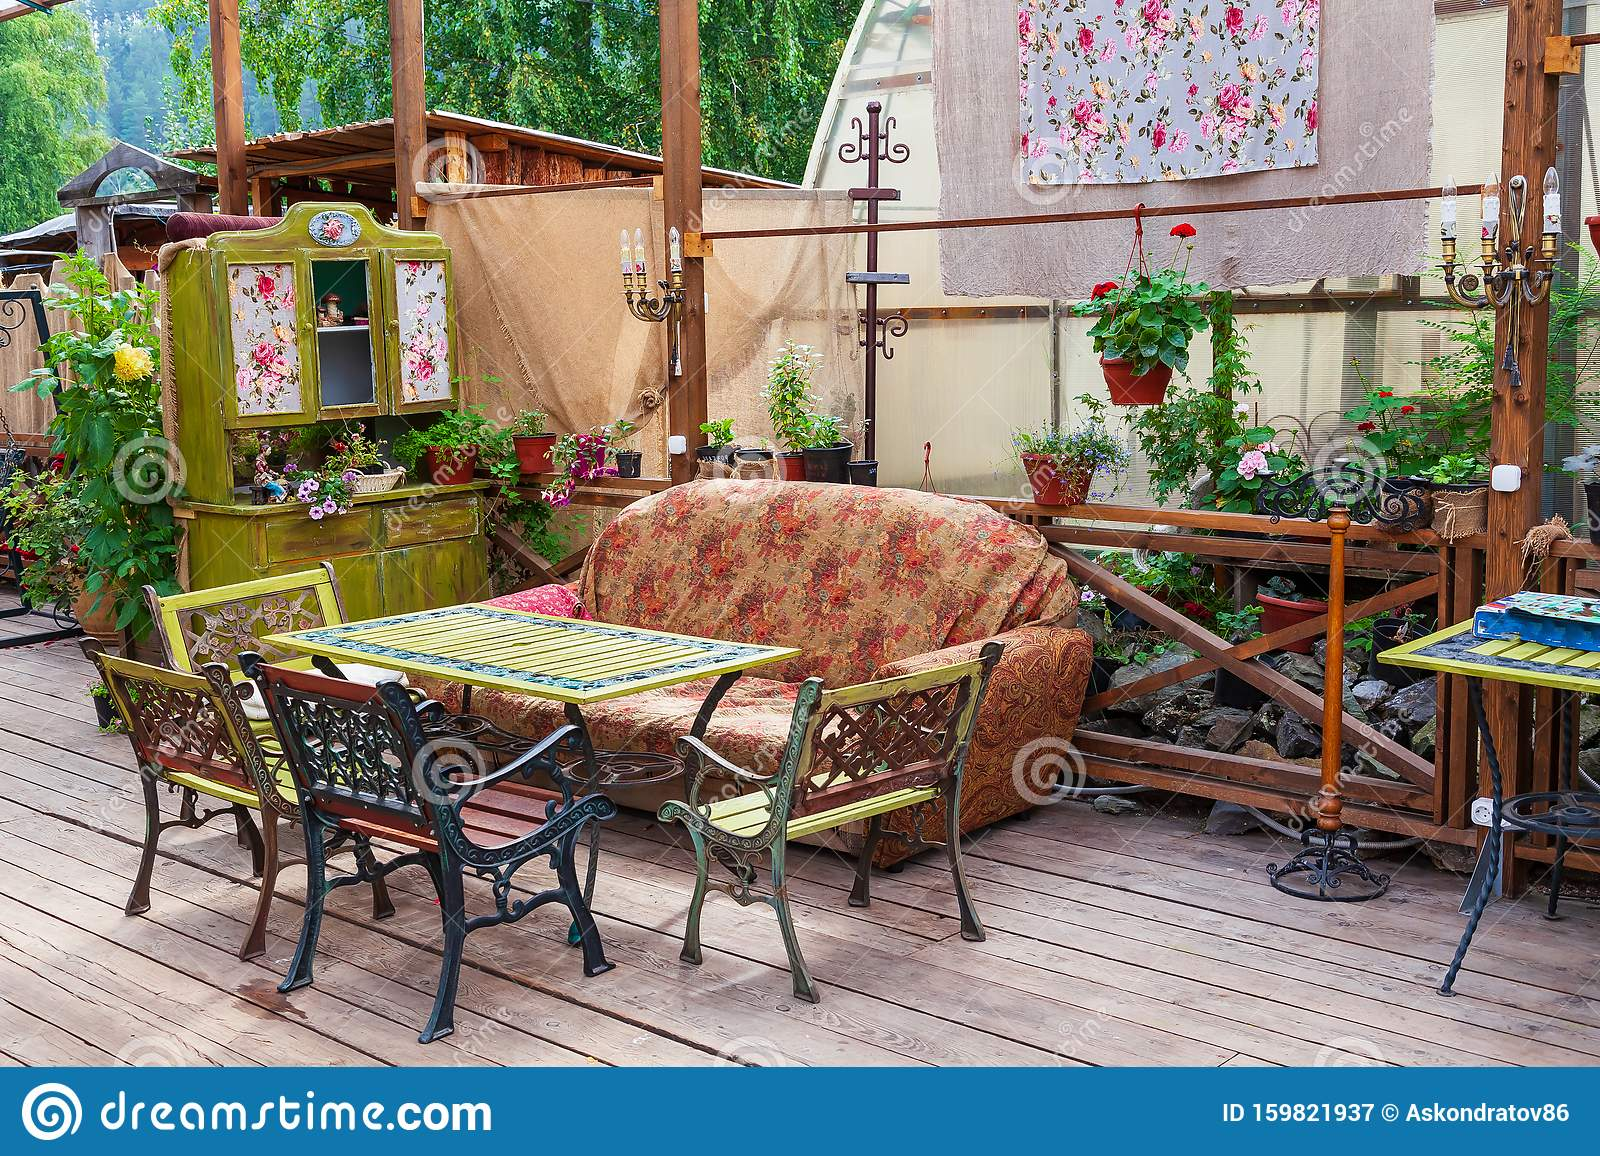 Cafe Or Restaurant Interior In Vintage Style With Colored Old Things Sofa And Chairs In The Open Air Interior Design Stock Image Image Of Dirty Color 159821937